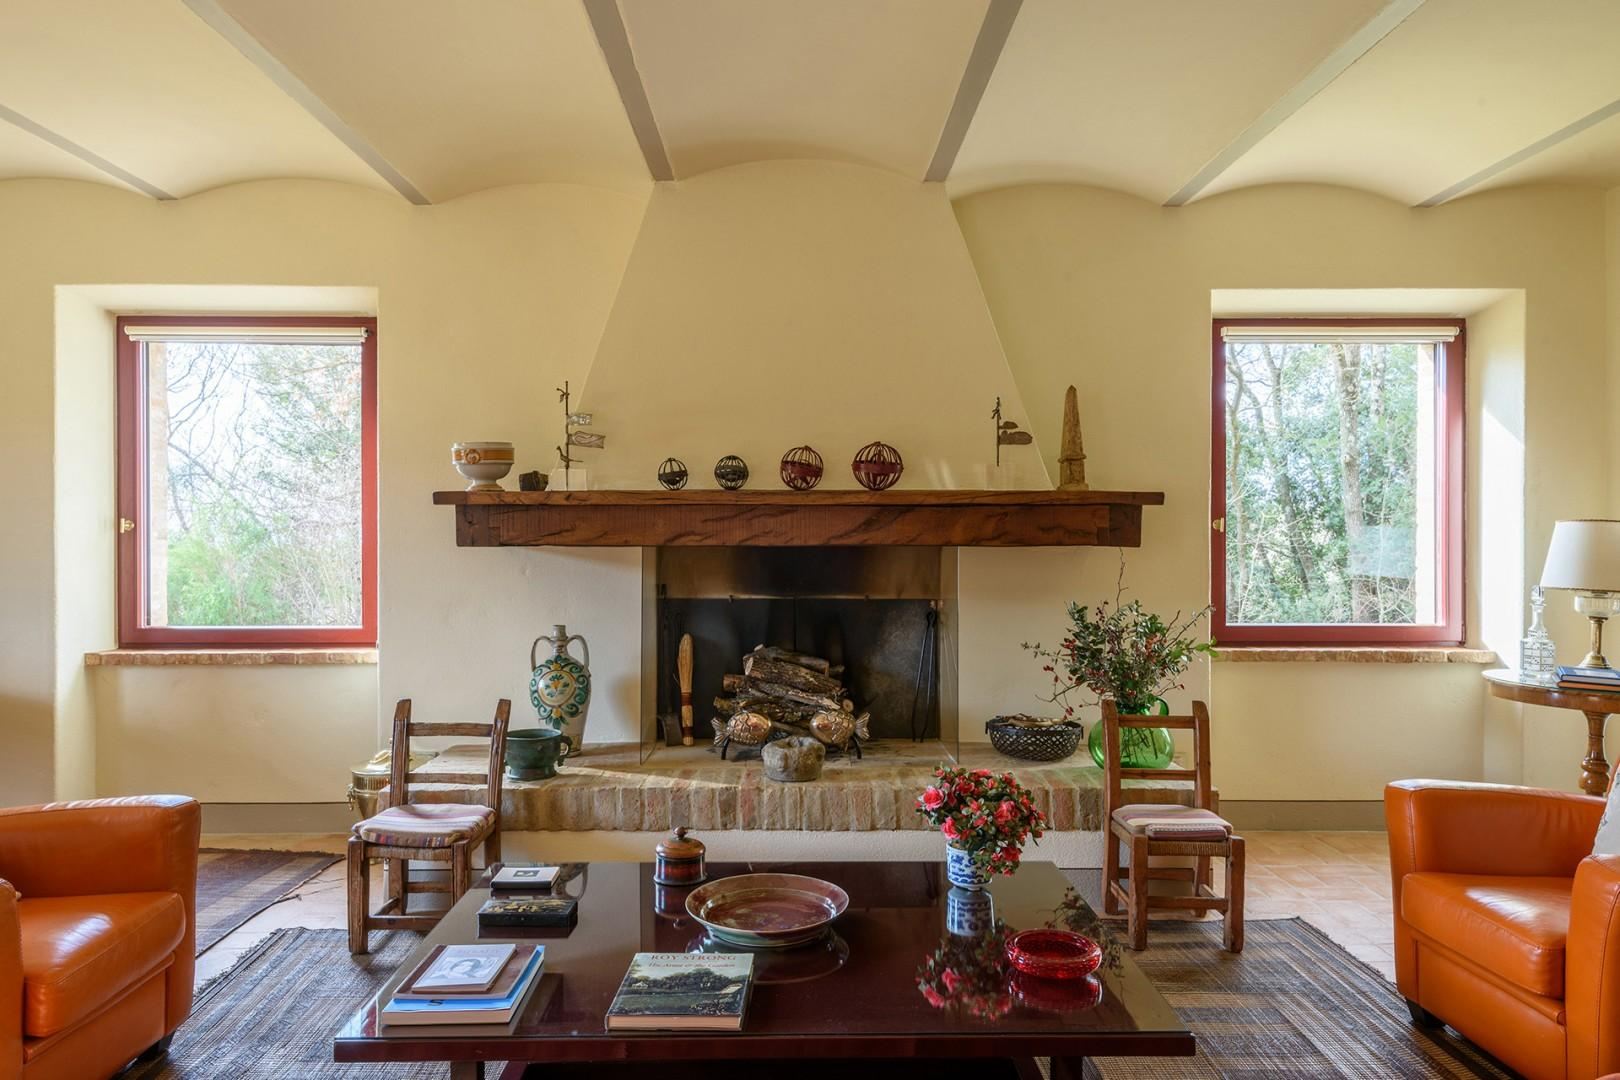 The house is great for a summer or winter stay, it is well heated and insulated.